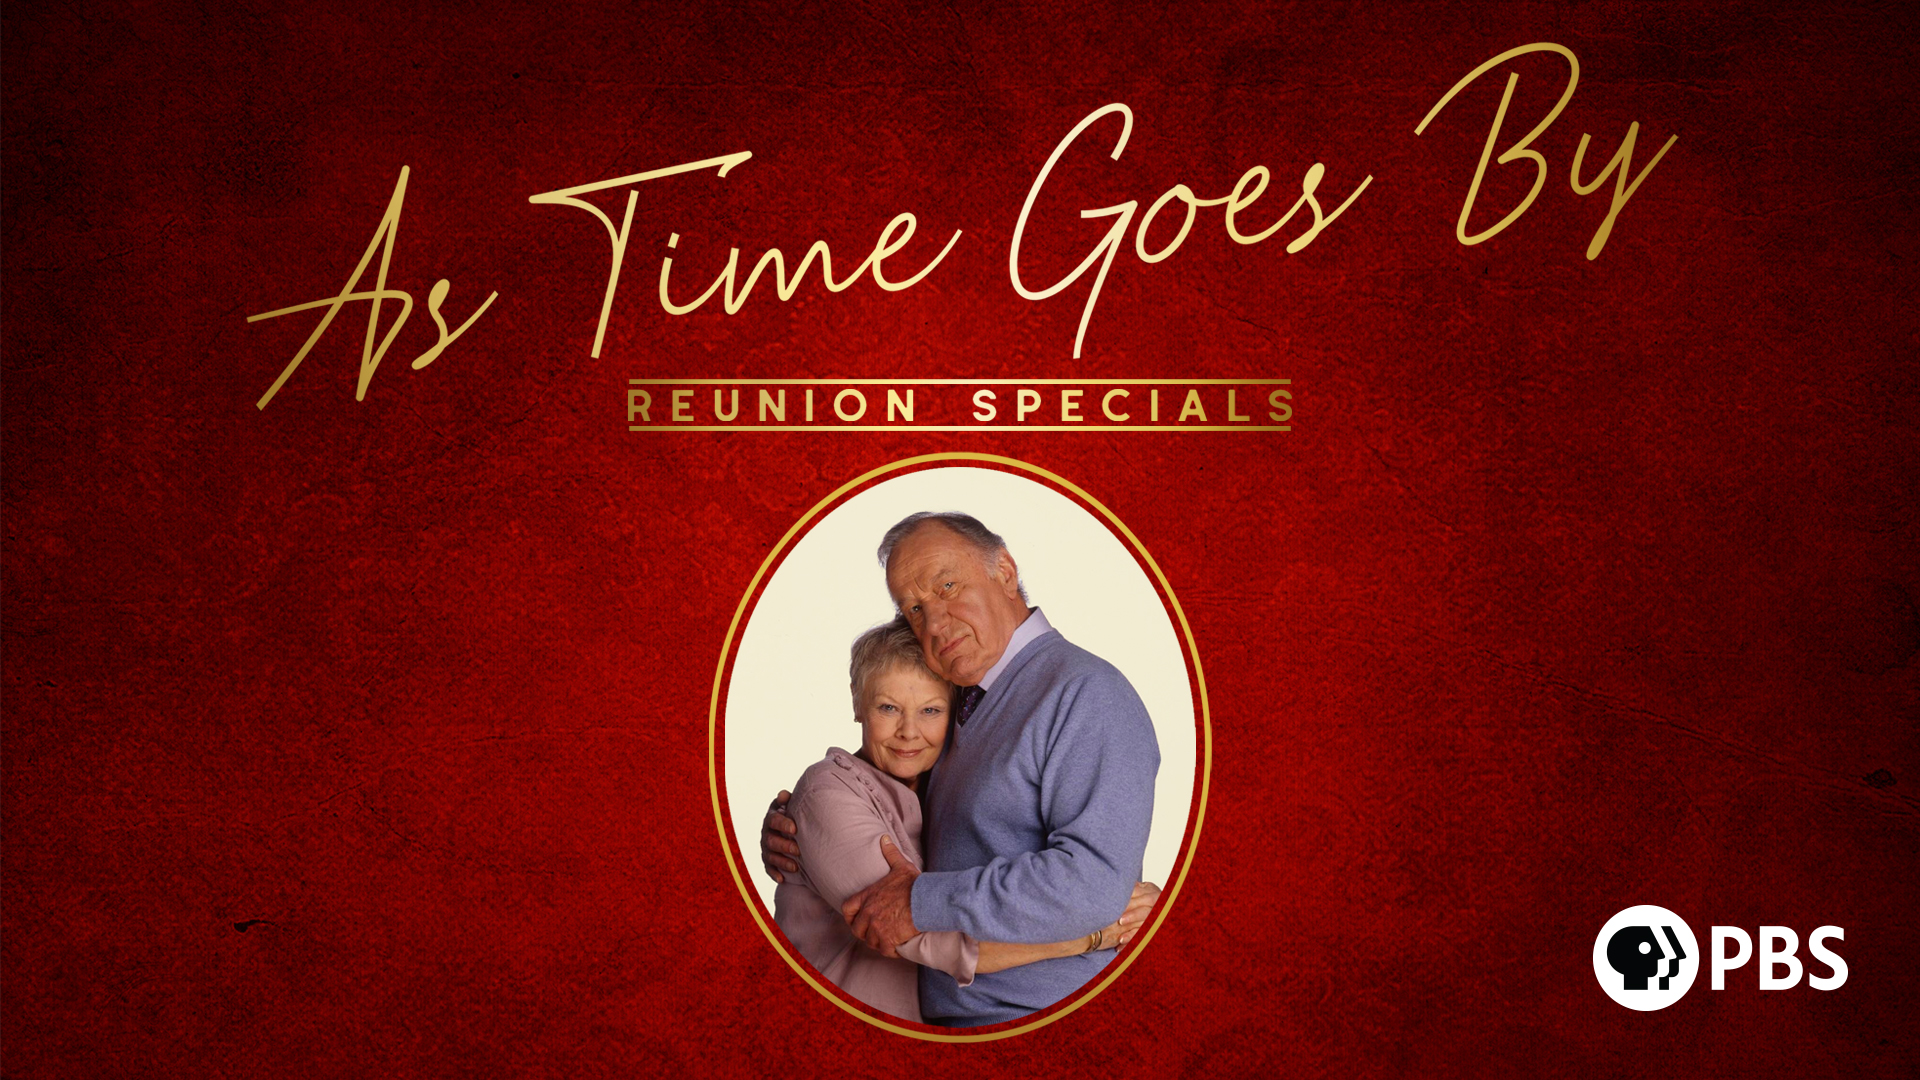 As Time Goes By: Reunion Specials, Season 1